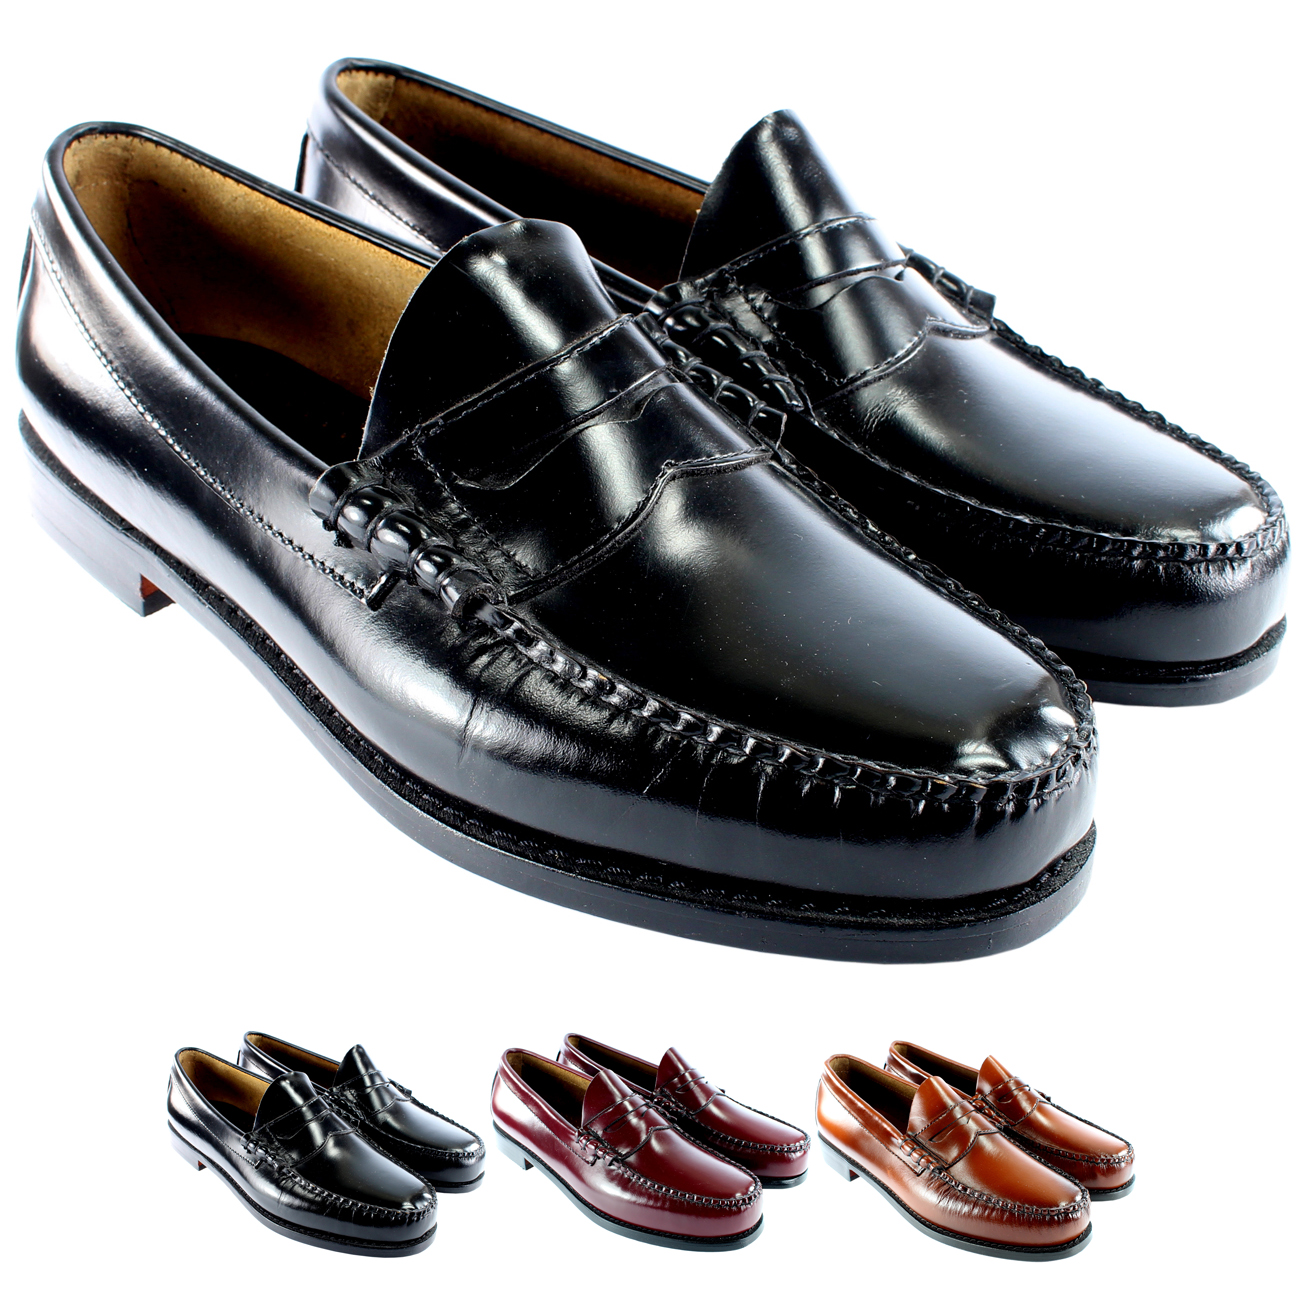 Our collection of men's loafers has you covered. From classic penny loafers and stylish tassel loafers to men's suede loafers as well as leather, find loafers for men from formal favourites; Ted Baker, Bass, Dr Martens and more.